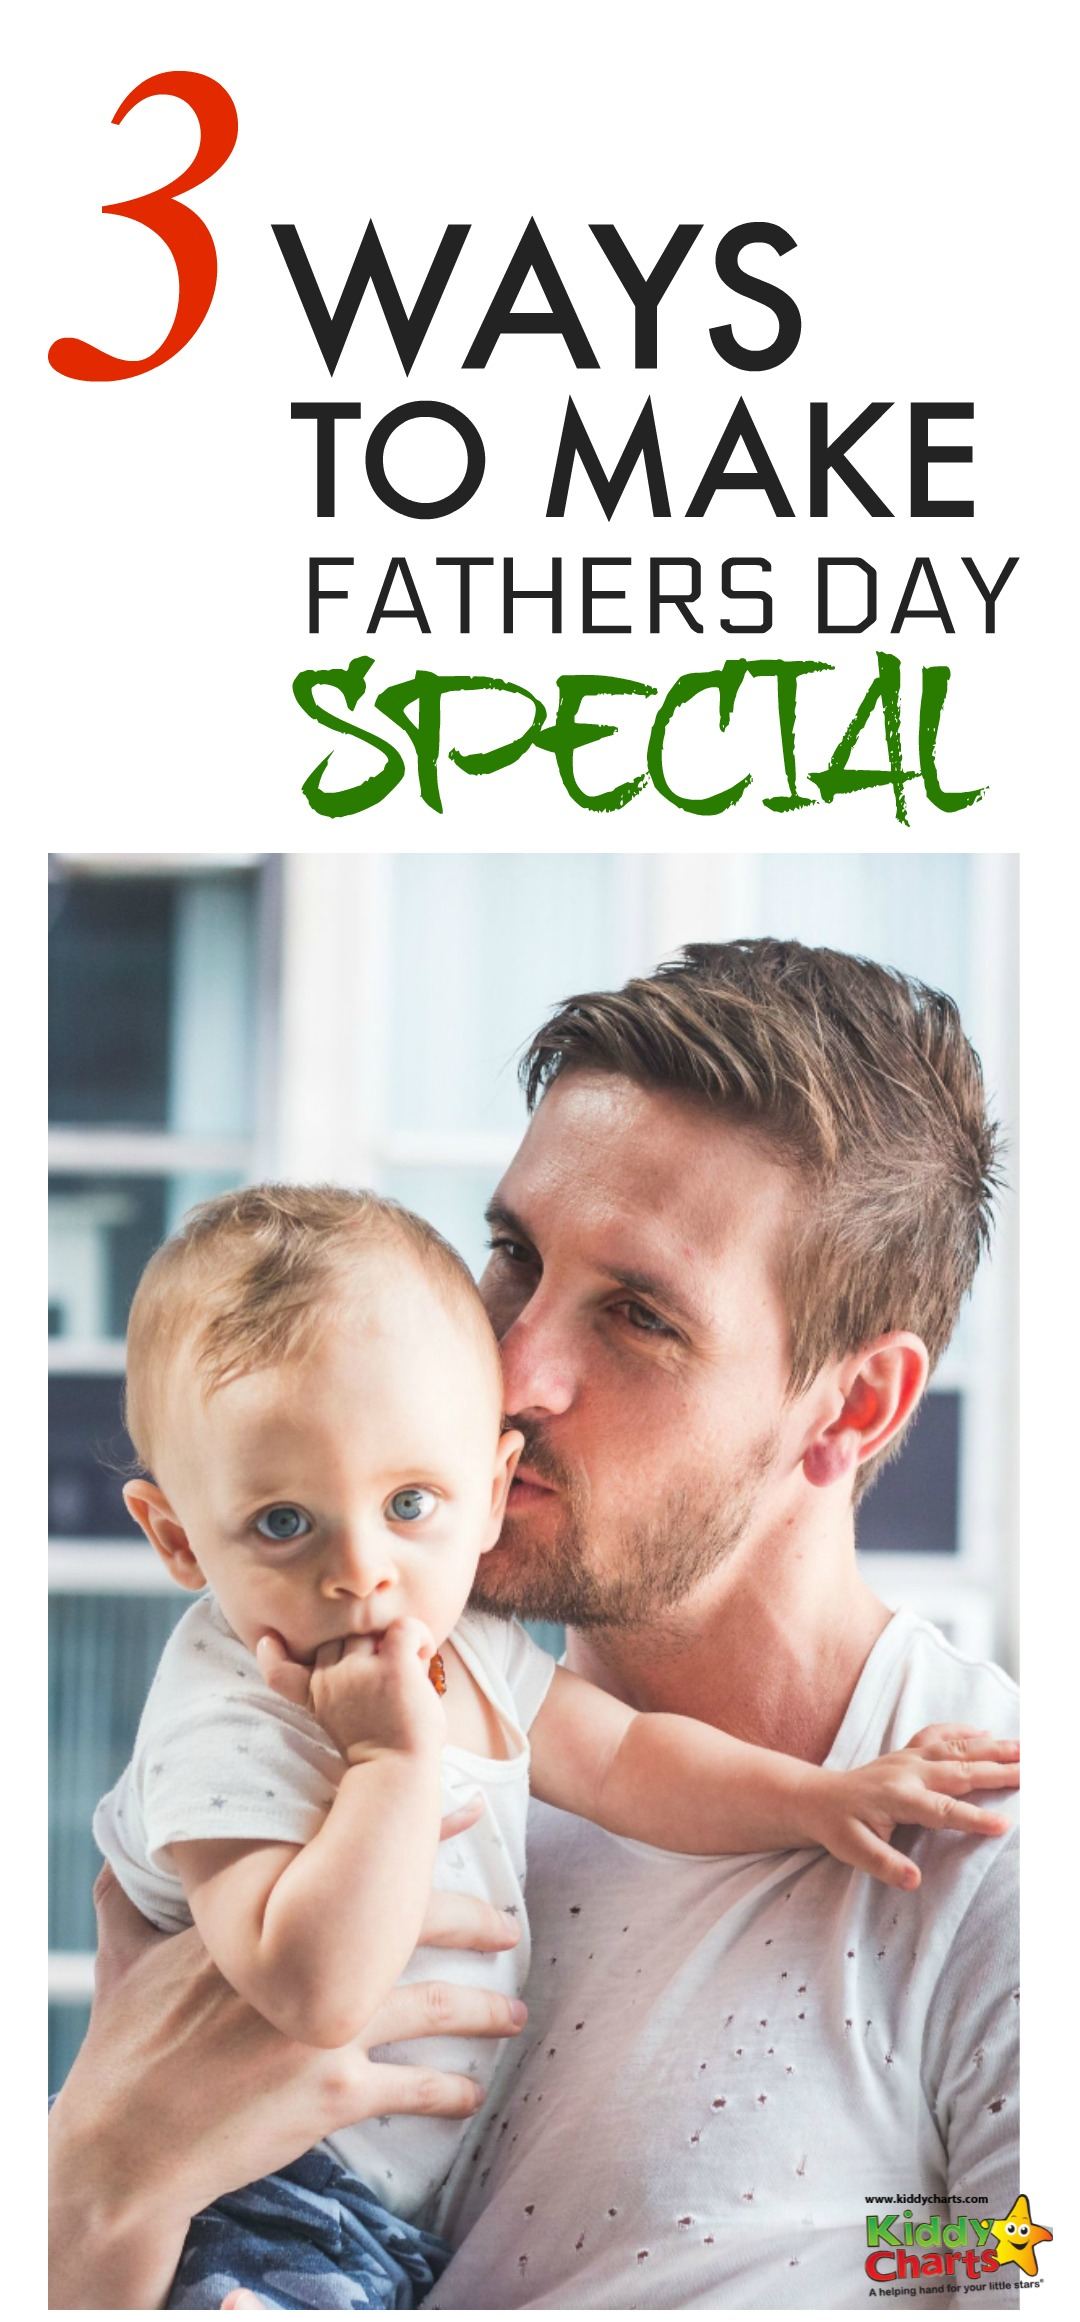 Are you looking for ideas for Fathers Day? We've got three ways you can involve the kids in it more, even when they are young, so you can make it special! #fathersday #fathersdayideas #kids #fathers #giftideas #planning